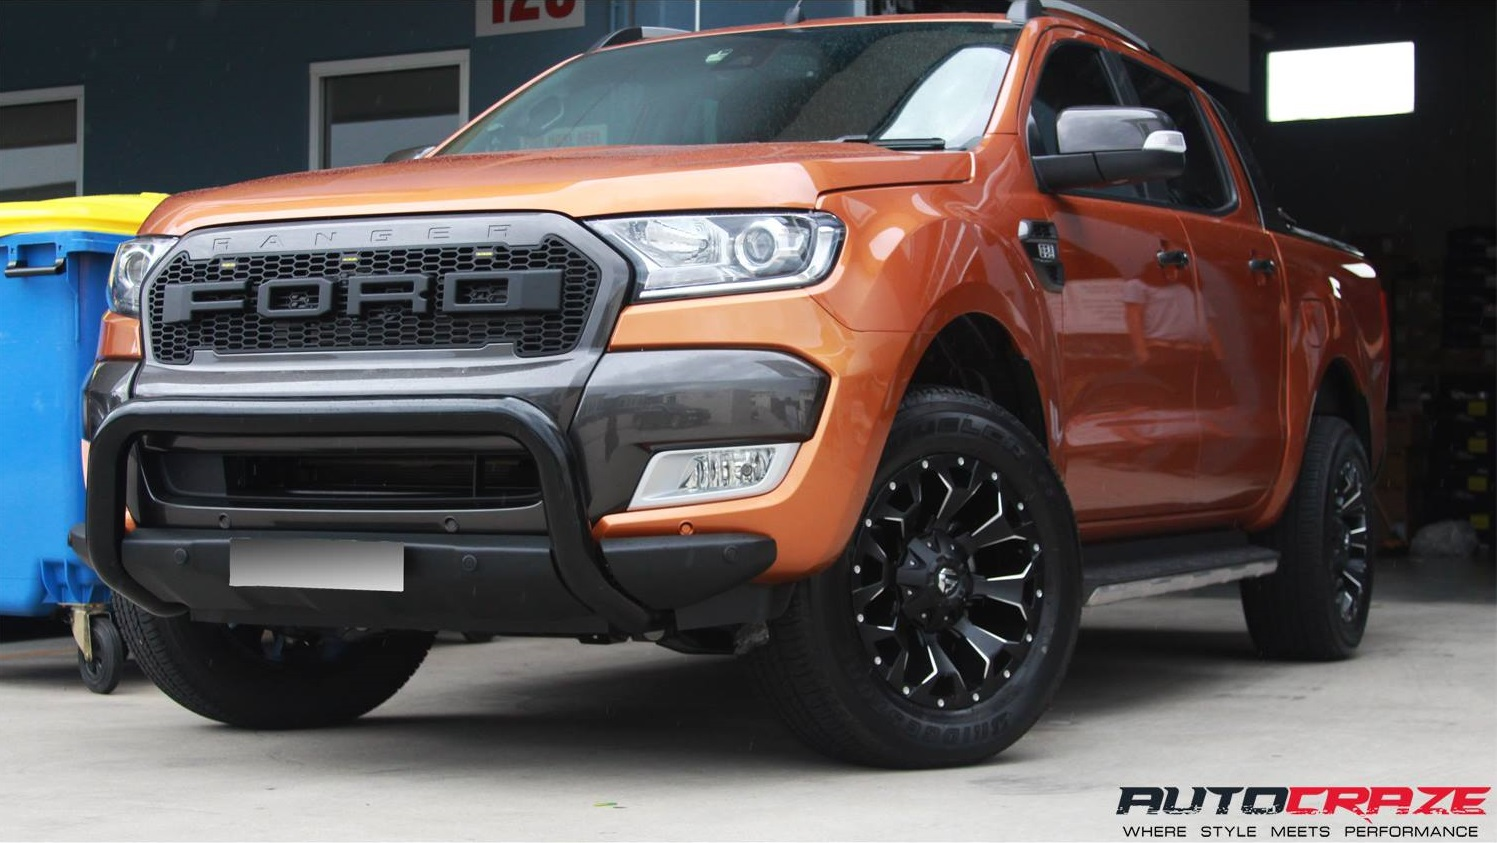 Ford Ranger Wheels : Ford ranger wheels size buy rims and tyres for sale